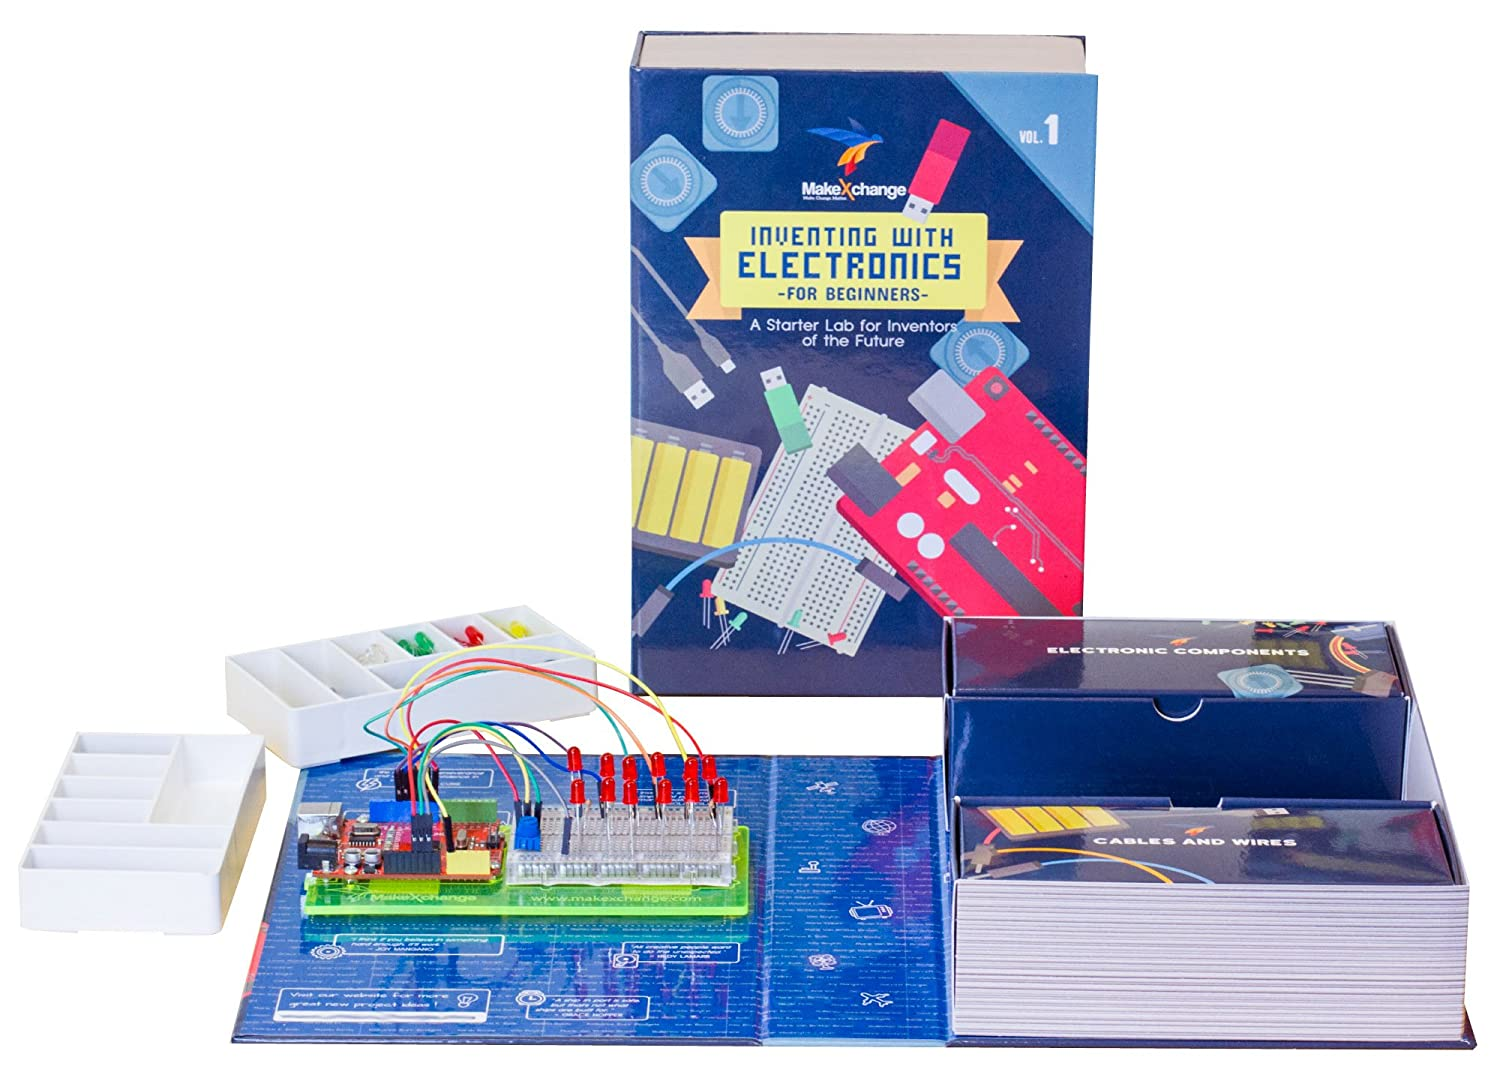 Electronics Kit That Teaches Coding Stem Toy Usb Circuit Development Made Easy Build Electronic Circuits Combines Making Without The Mess In Usa Toys Games